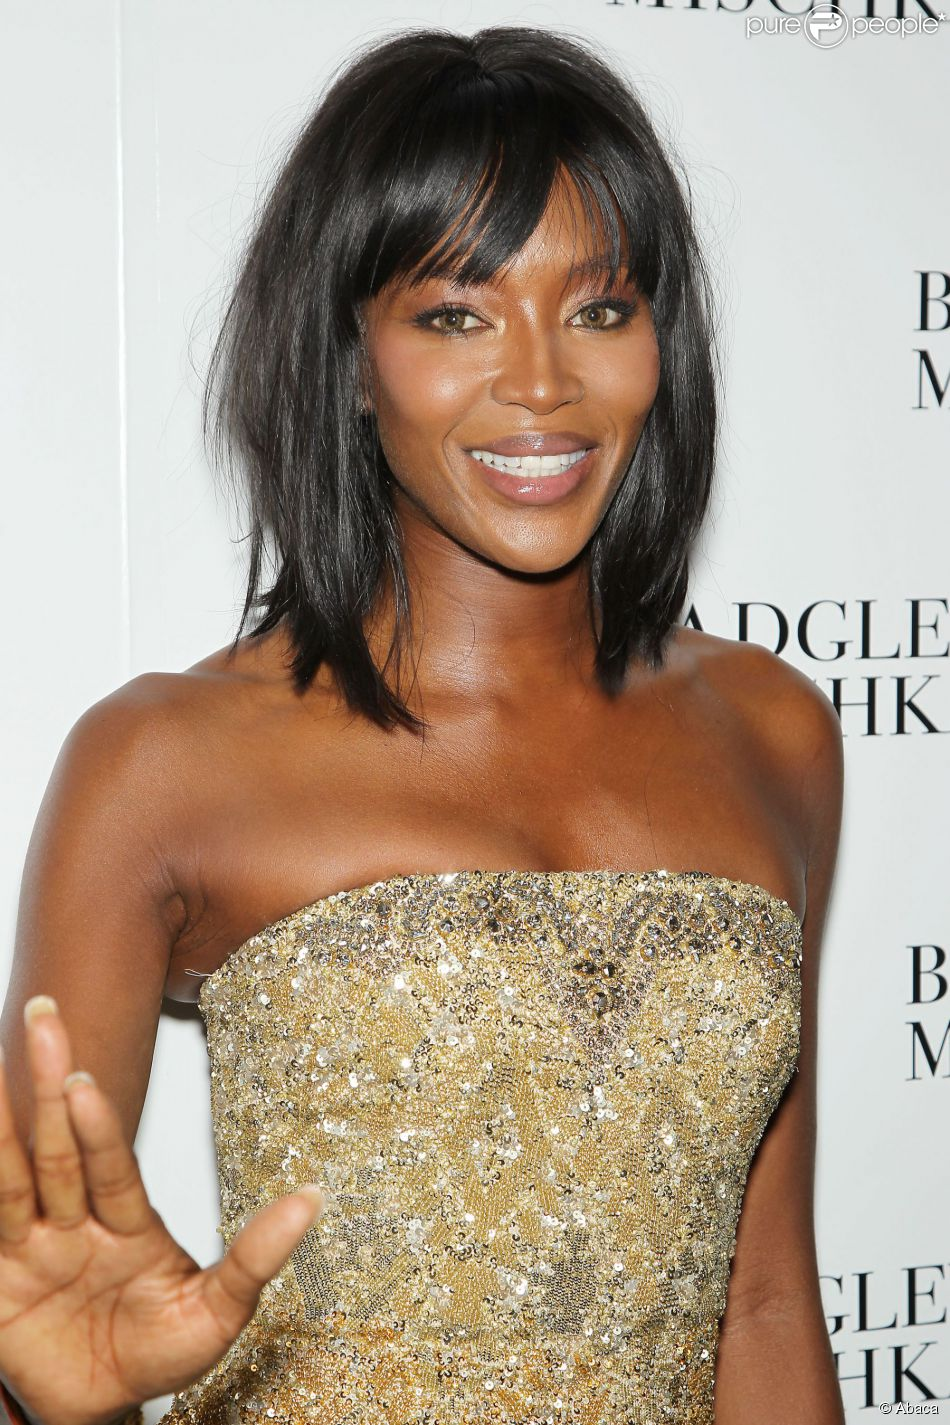 Naomi Campbell lors de la Mercedes-Benz Fashion Week Spring/Summer 2015 à New York le 9 septembre 2014